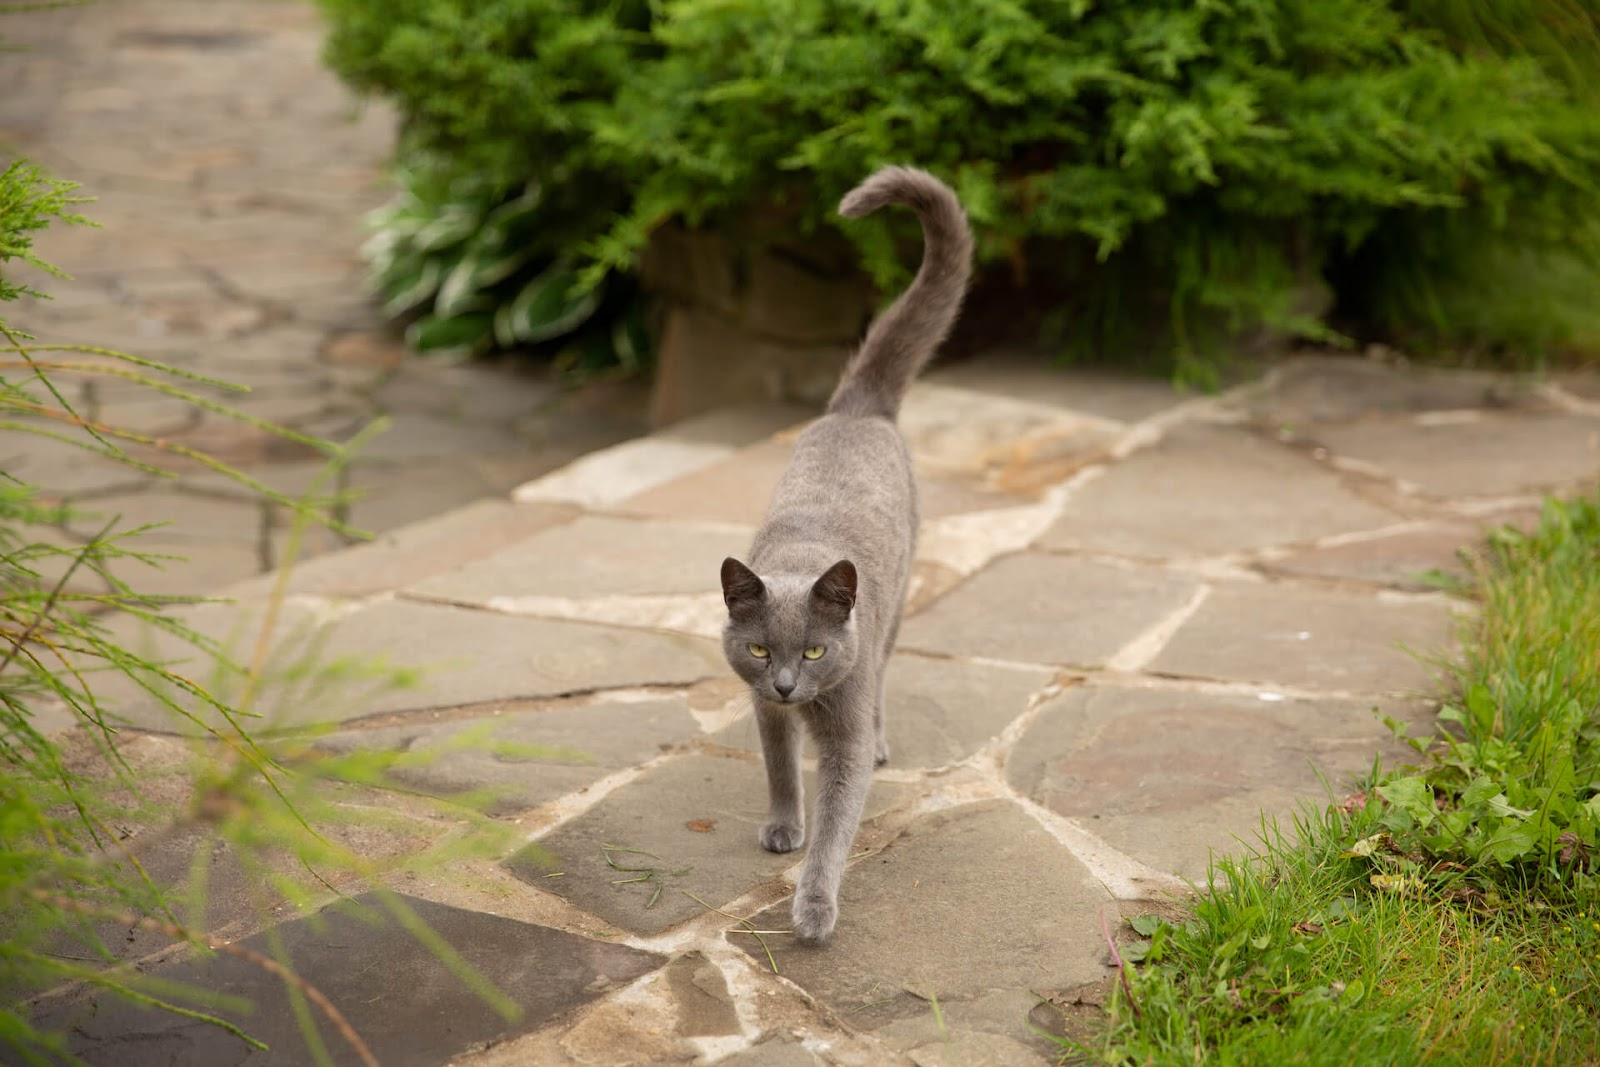 Cat with a curved tail walking towards the camera